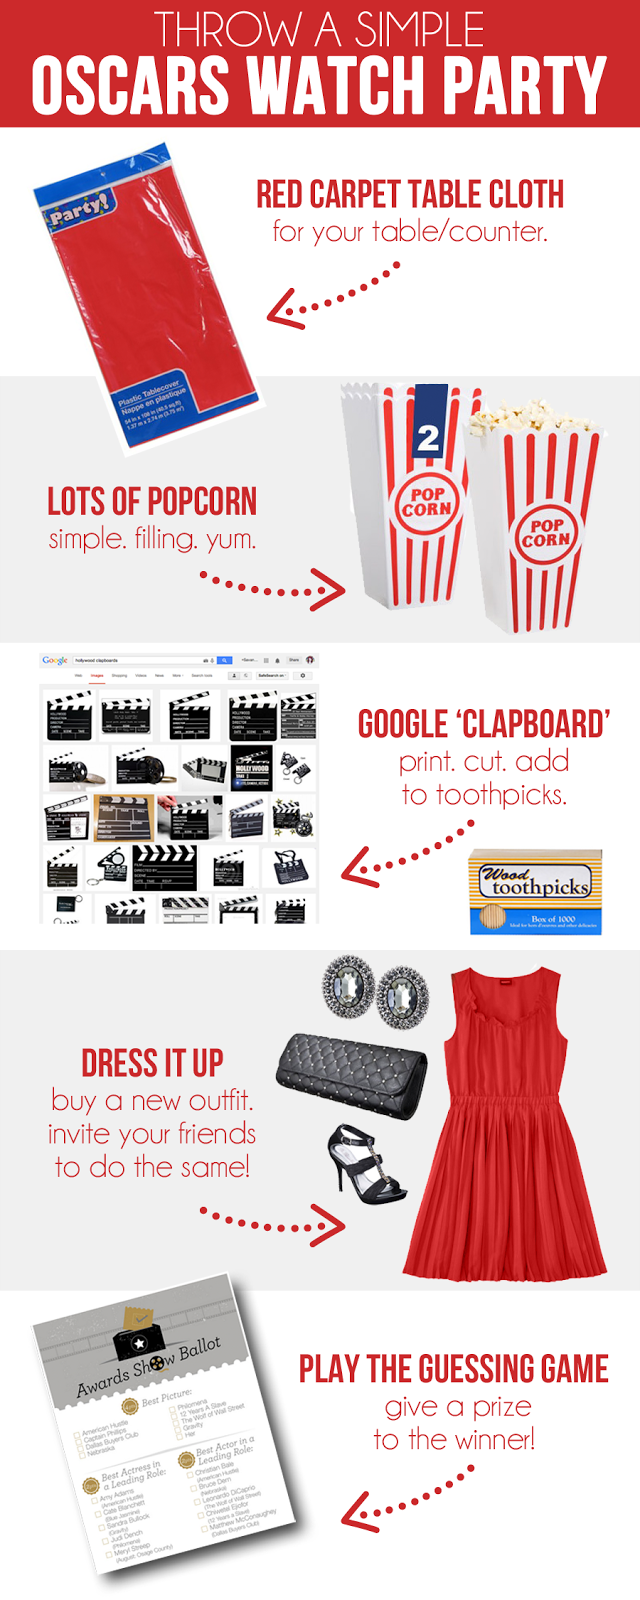 academy-awards-oscars-watch-party-plan.png